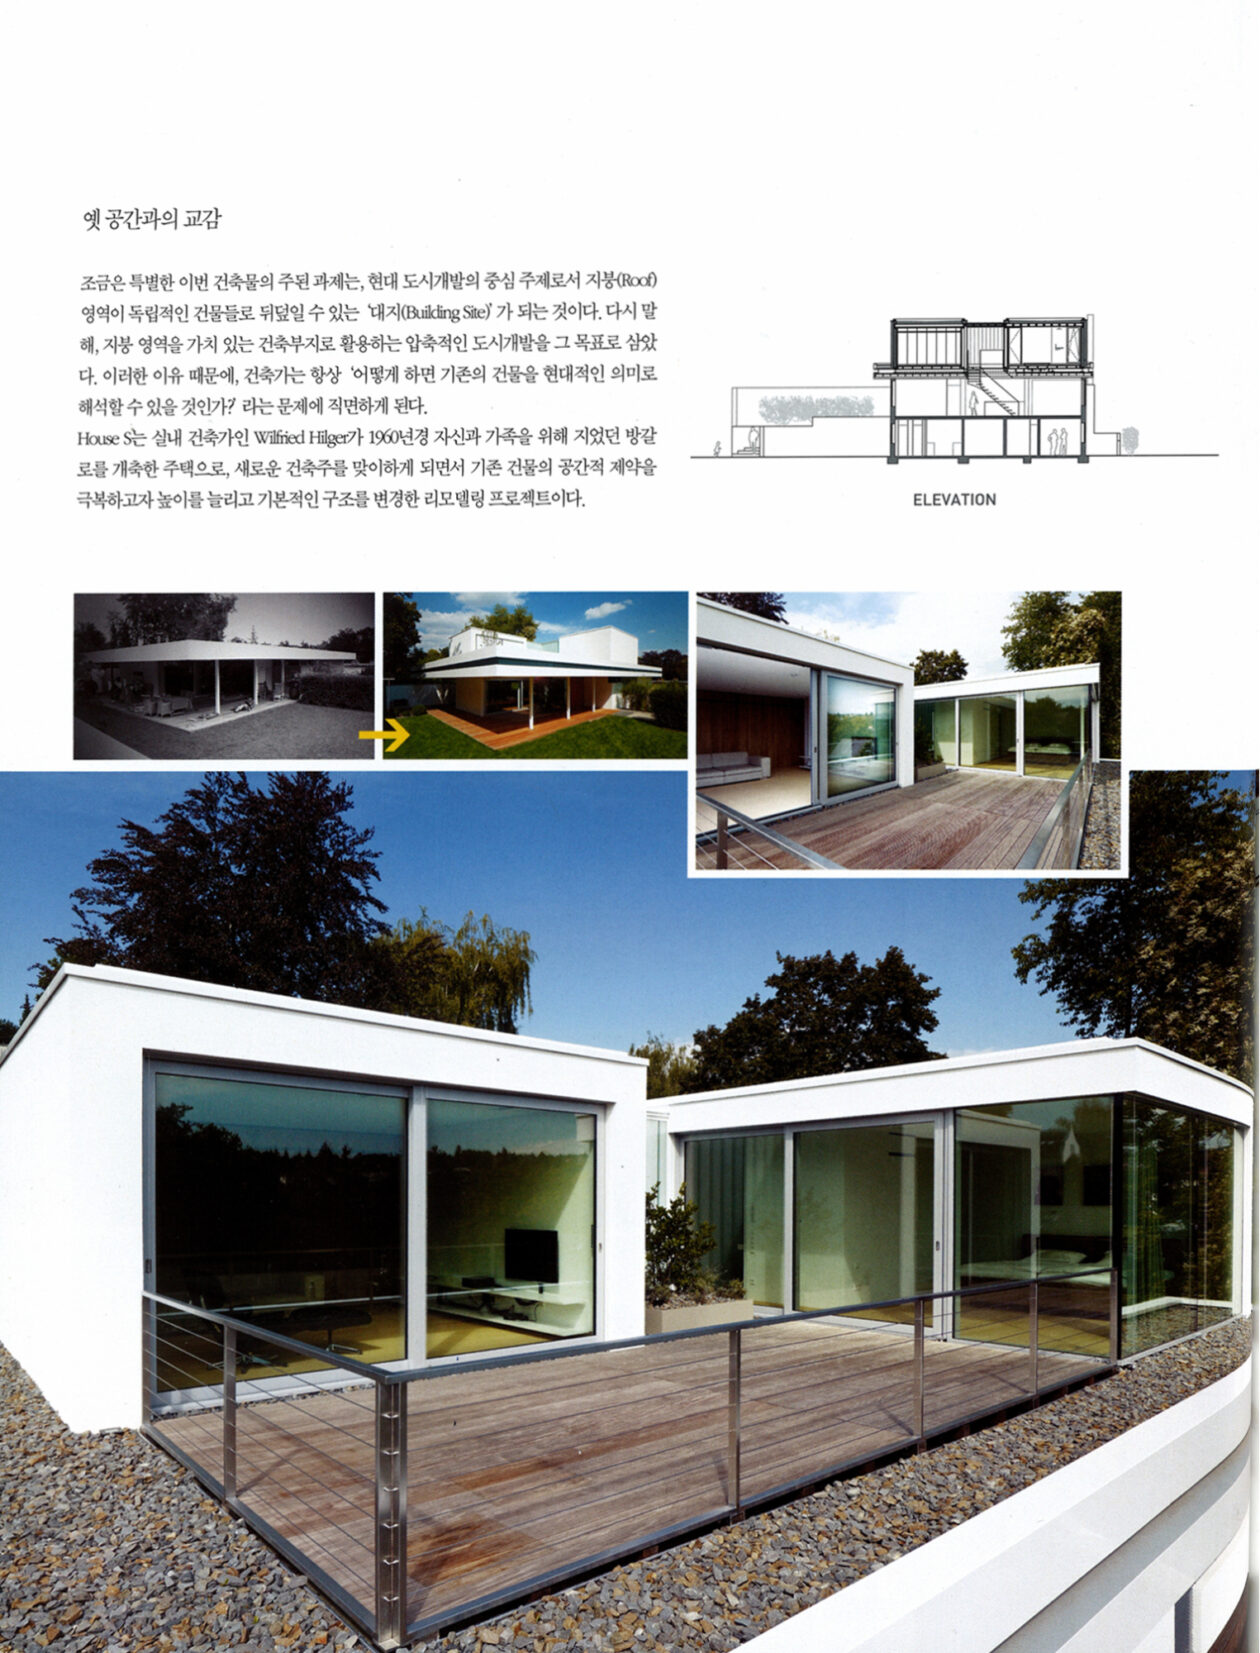 Country Housing Culture Magazine 04